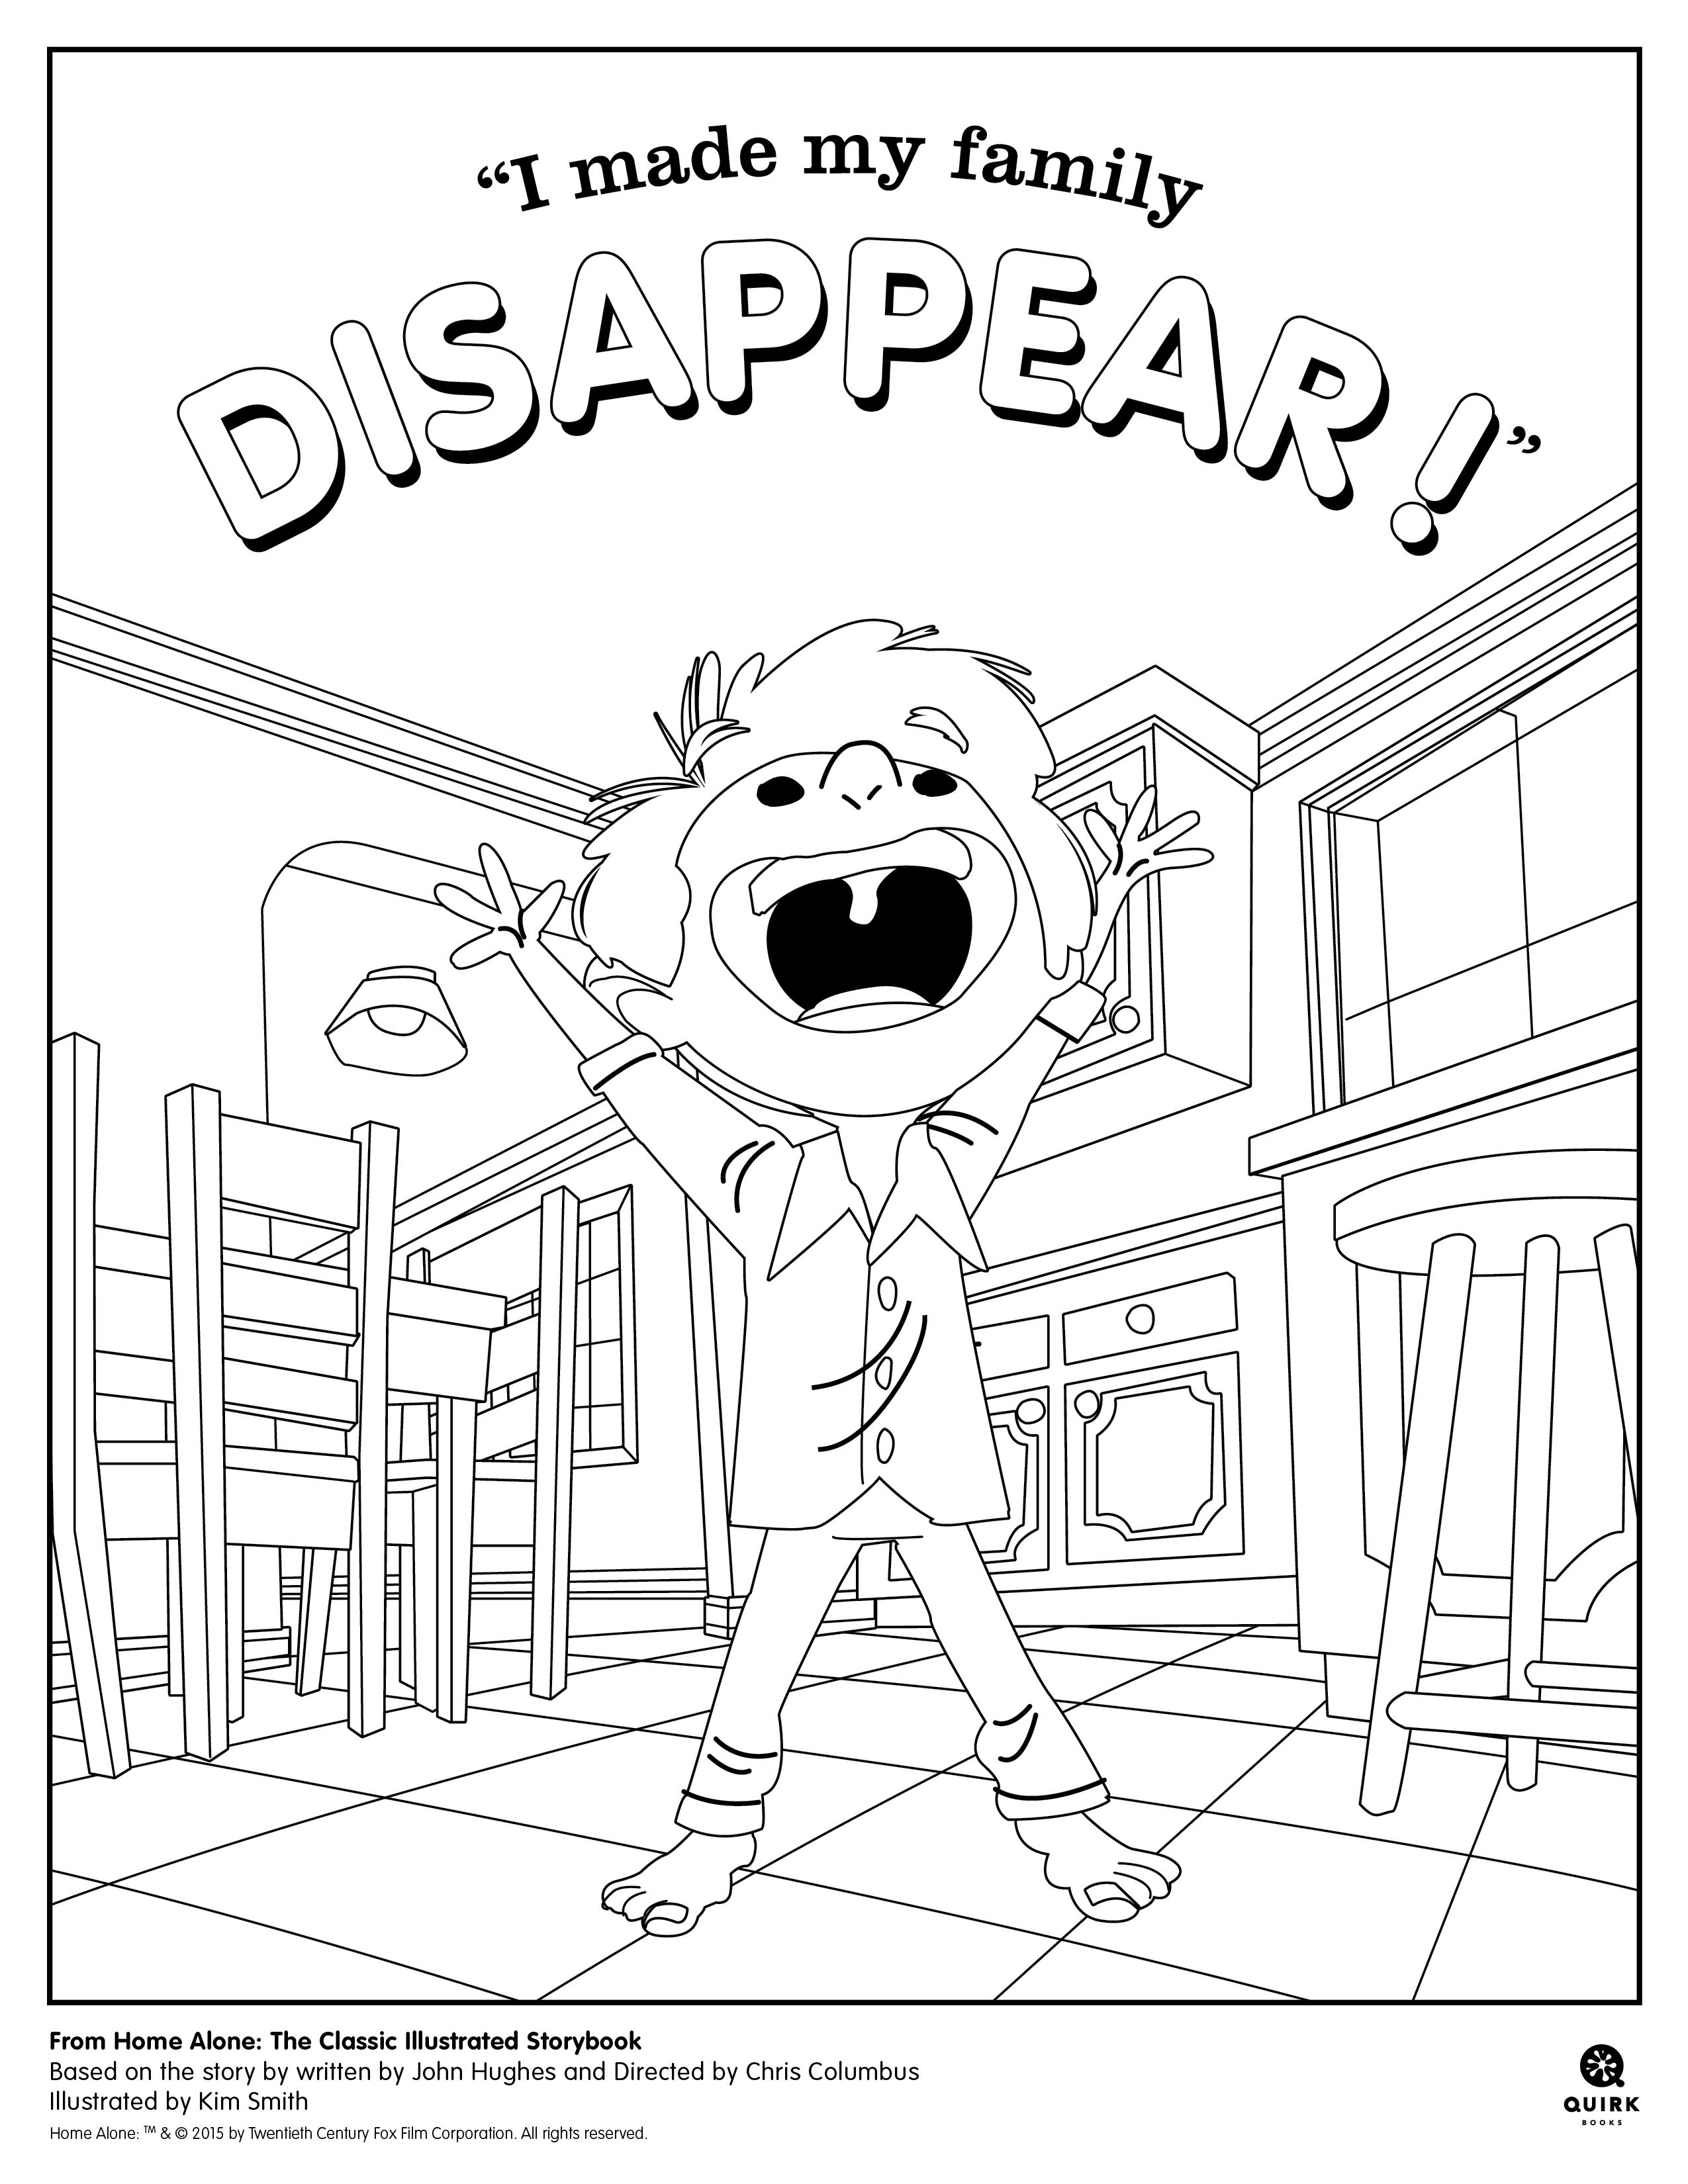 Coloring Page From Quirk Books Home Alone Picturebook Holidays